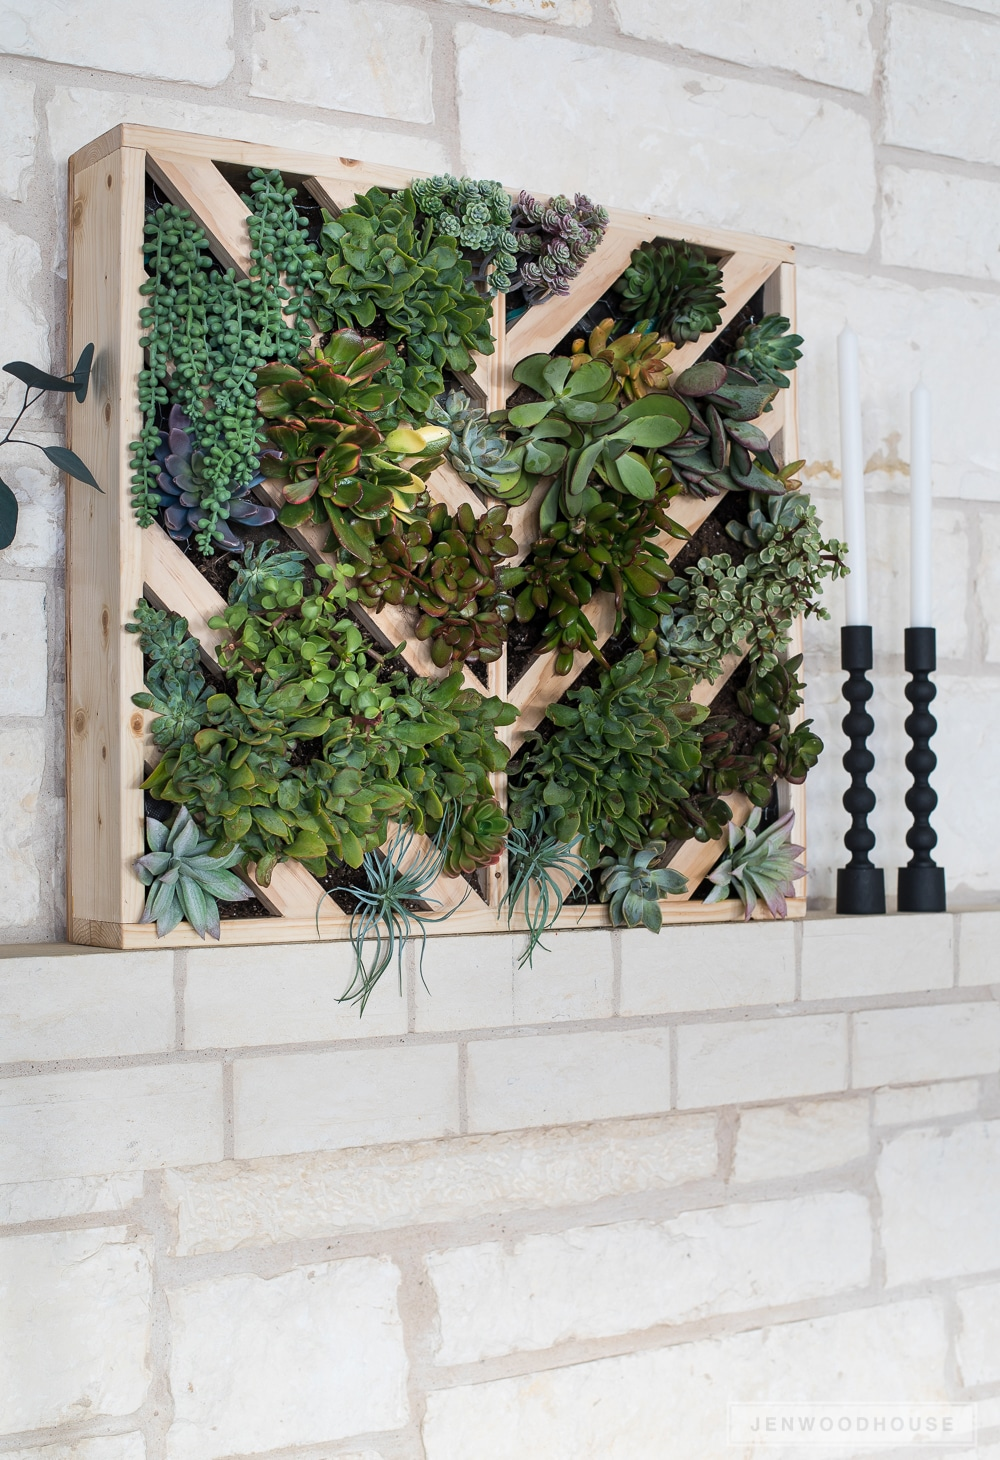 How to make a chevron wall planter